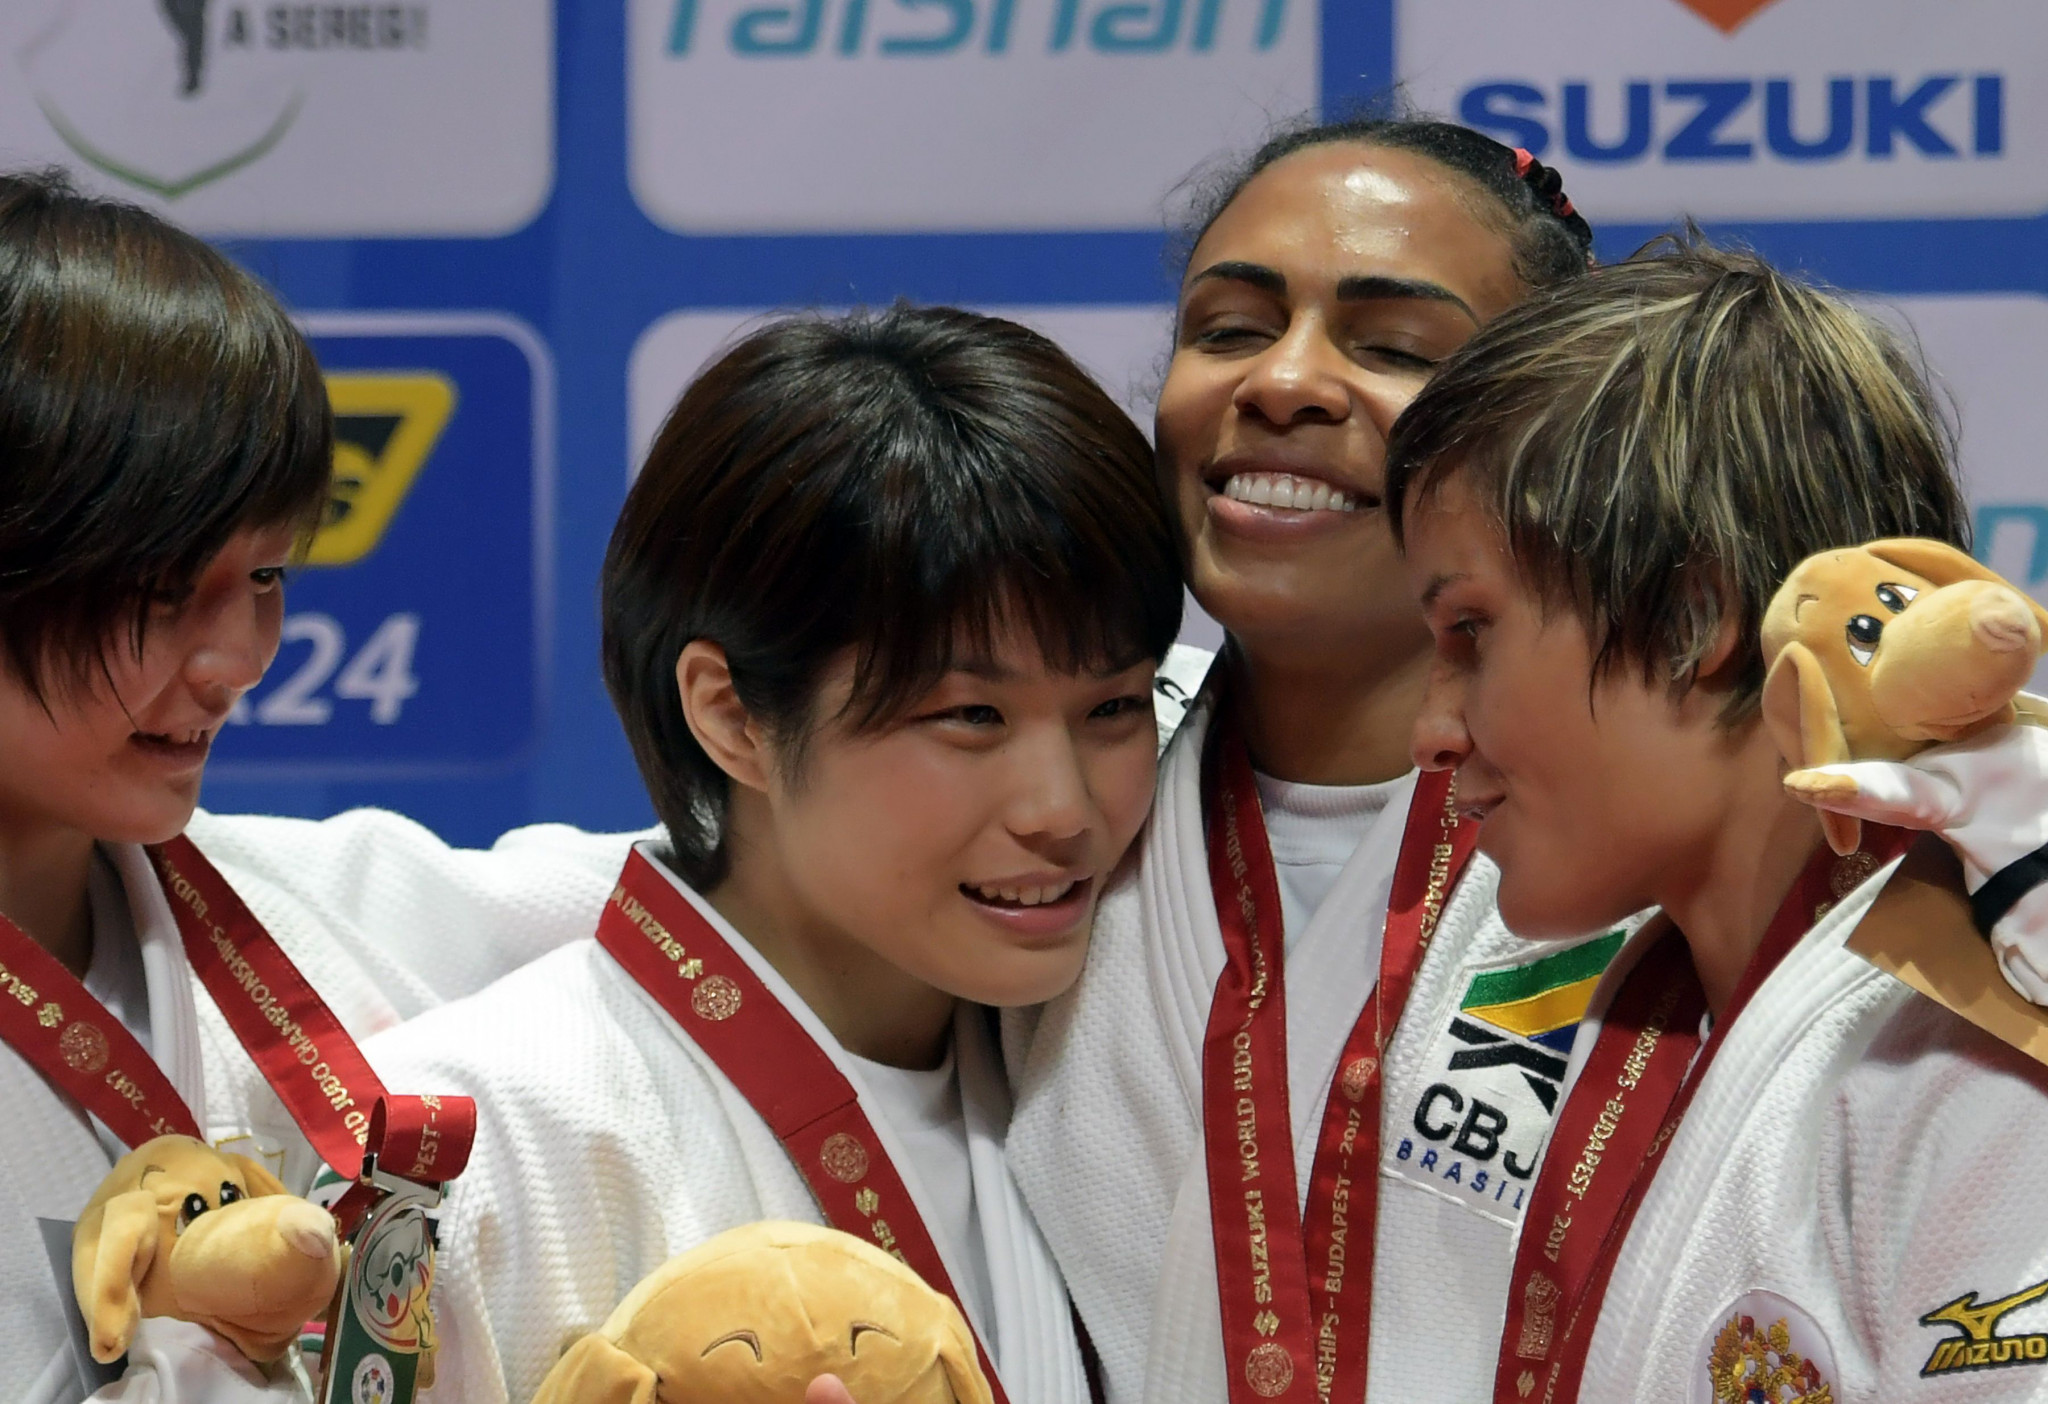 Kelmendi fails to win a medal as Japan continue domination at IJF World Championships